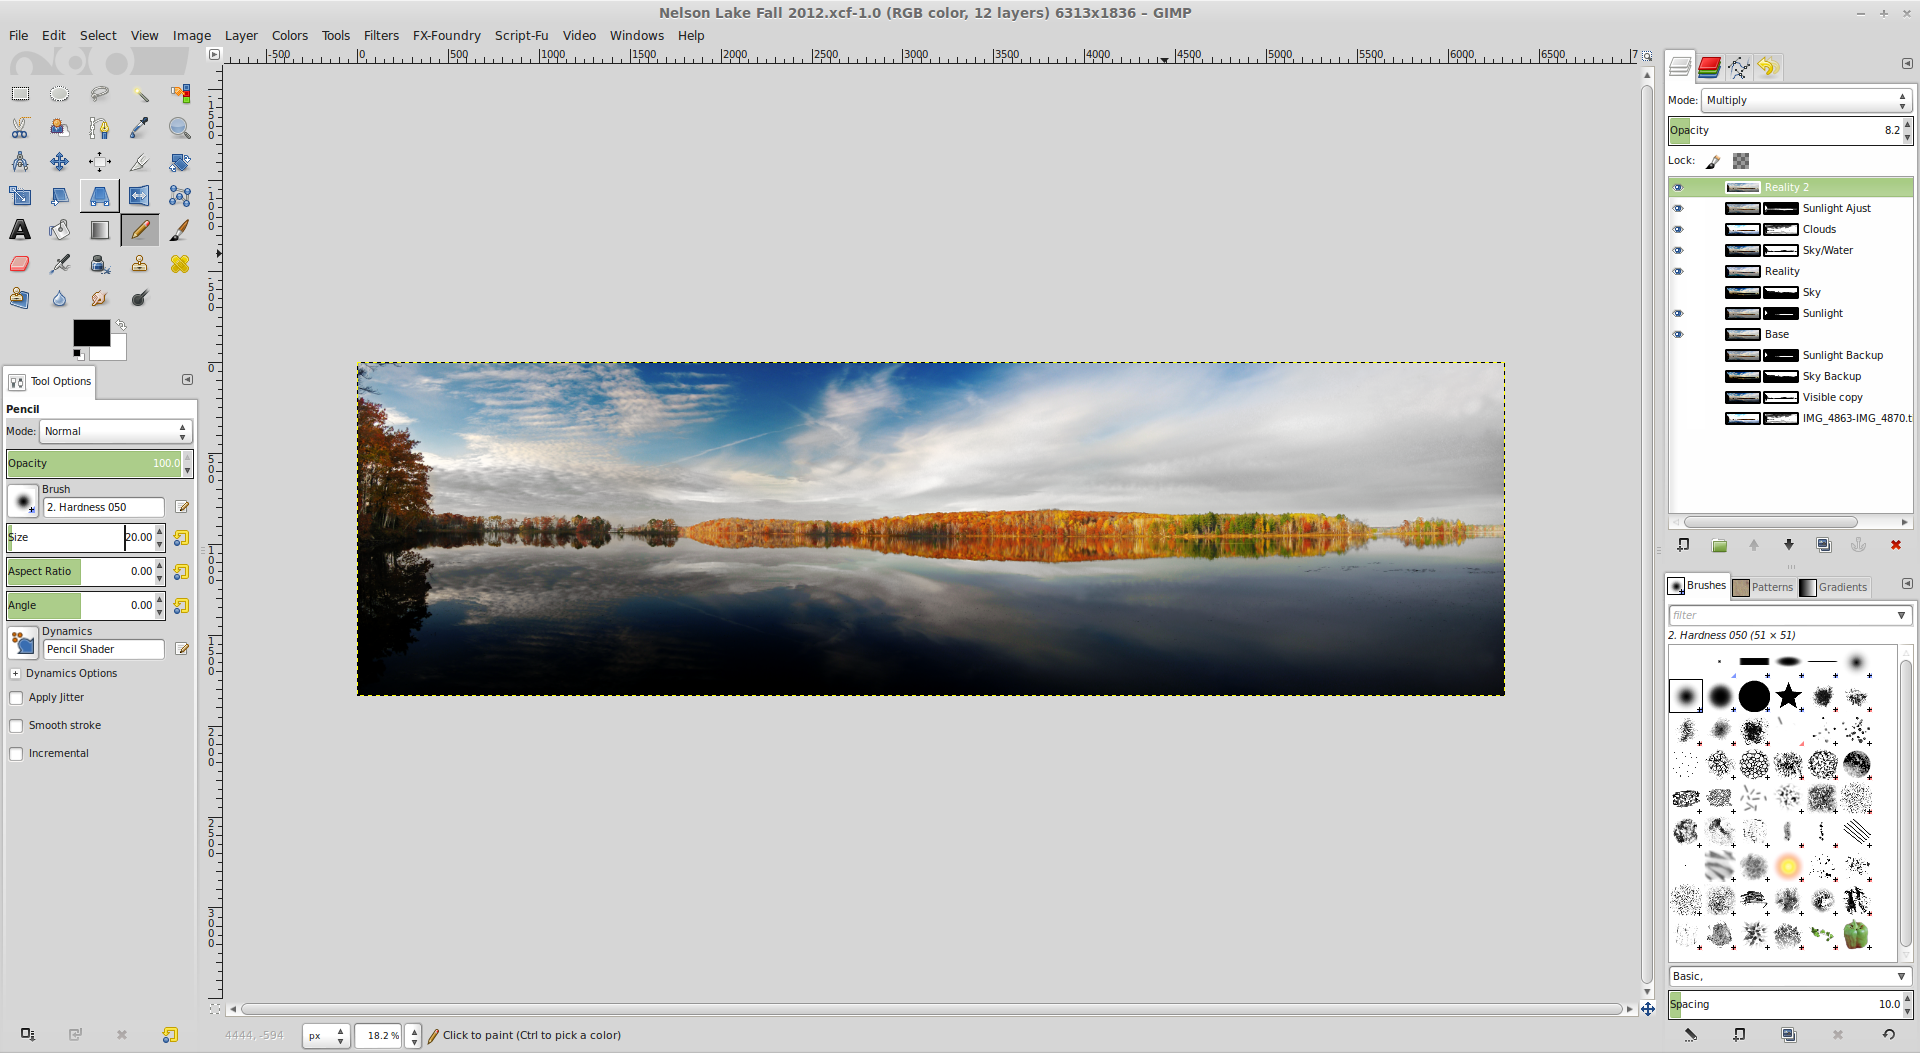 Finished edit file for the pano. All layers are labeled descriptively.